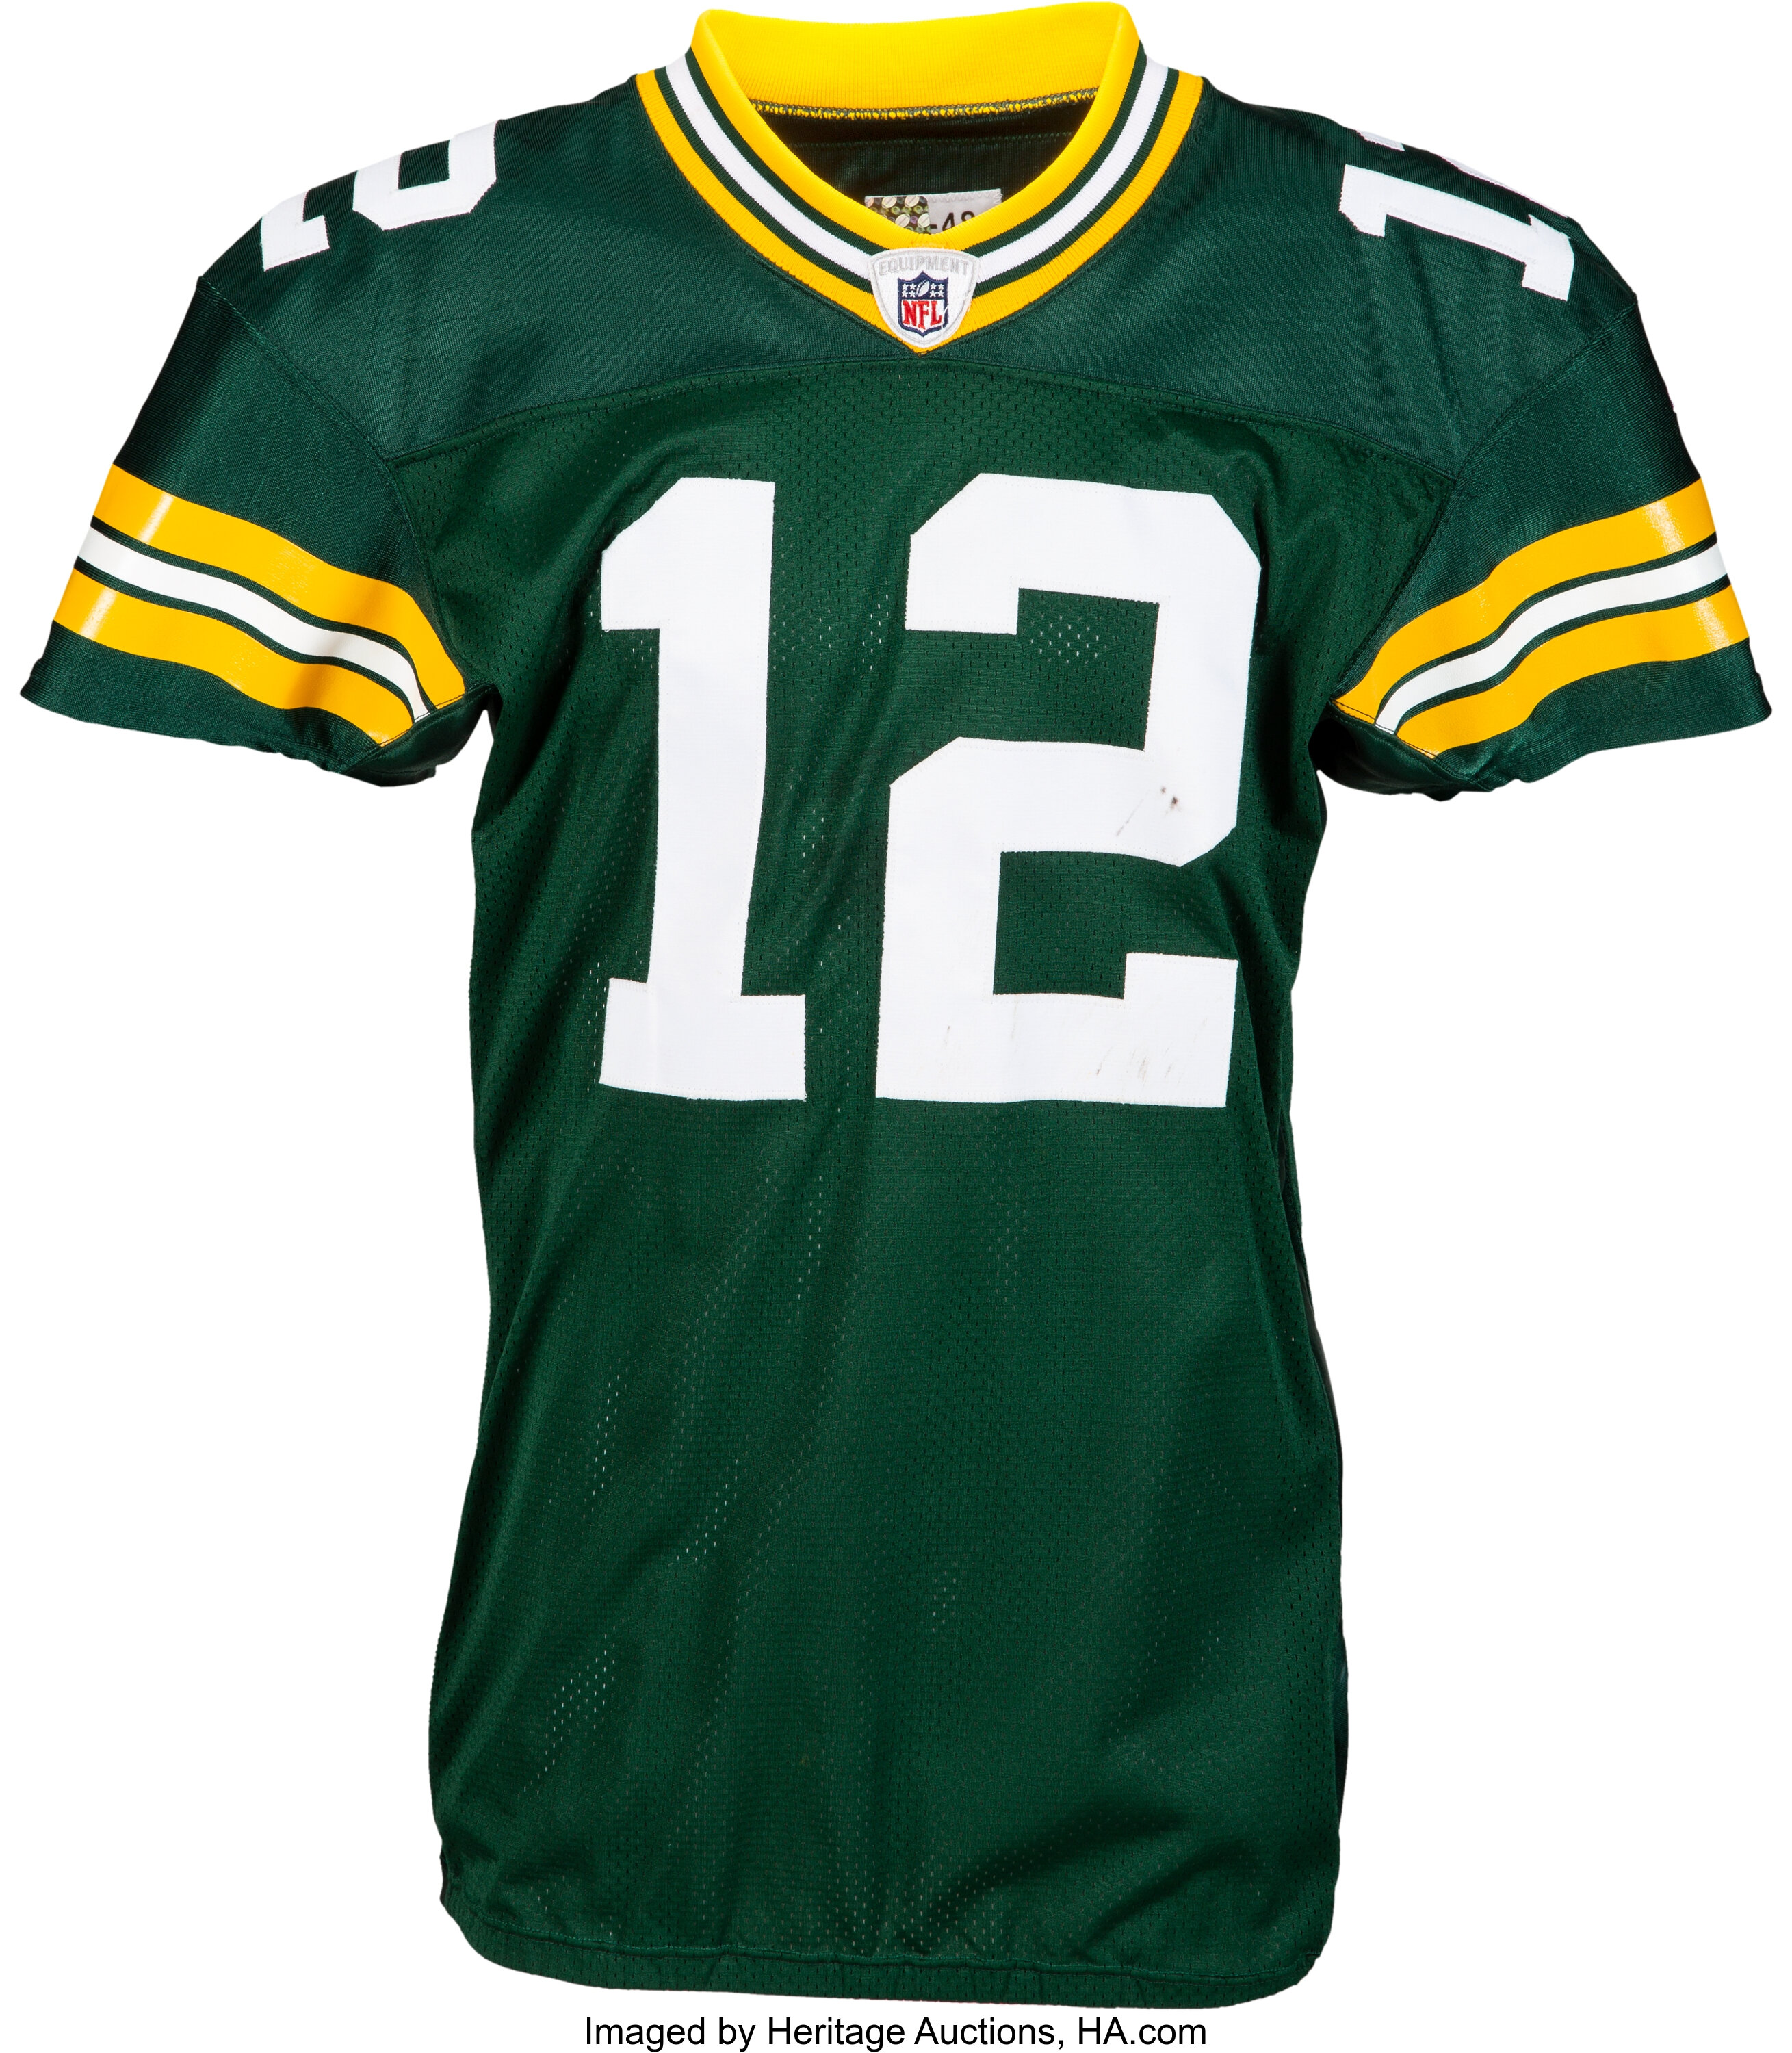 2010 Aaron Rodgers Game Worn, Unwashed Green Bay Packers | Lot ...